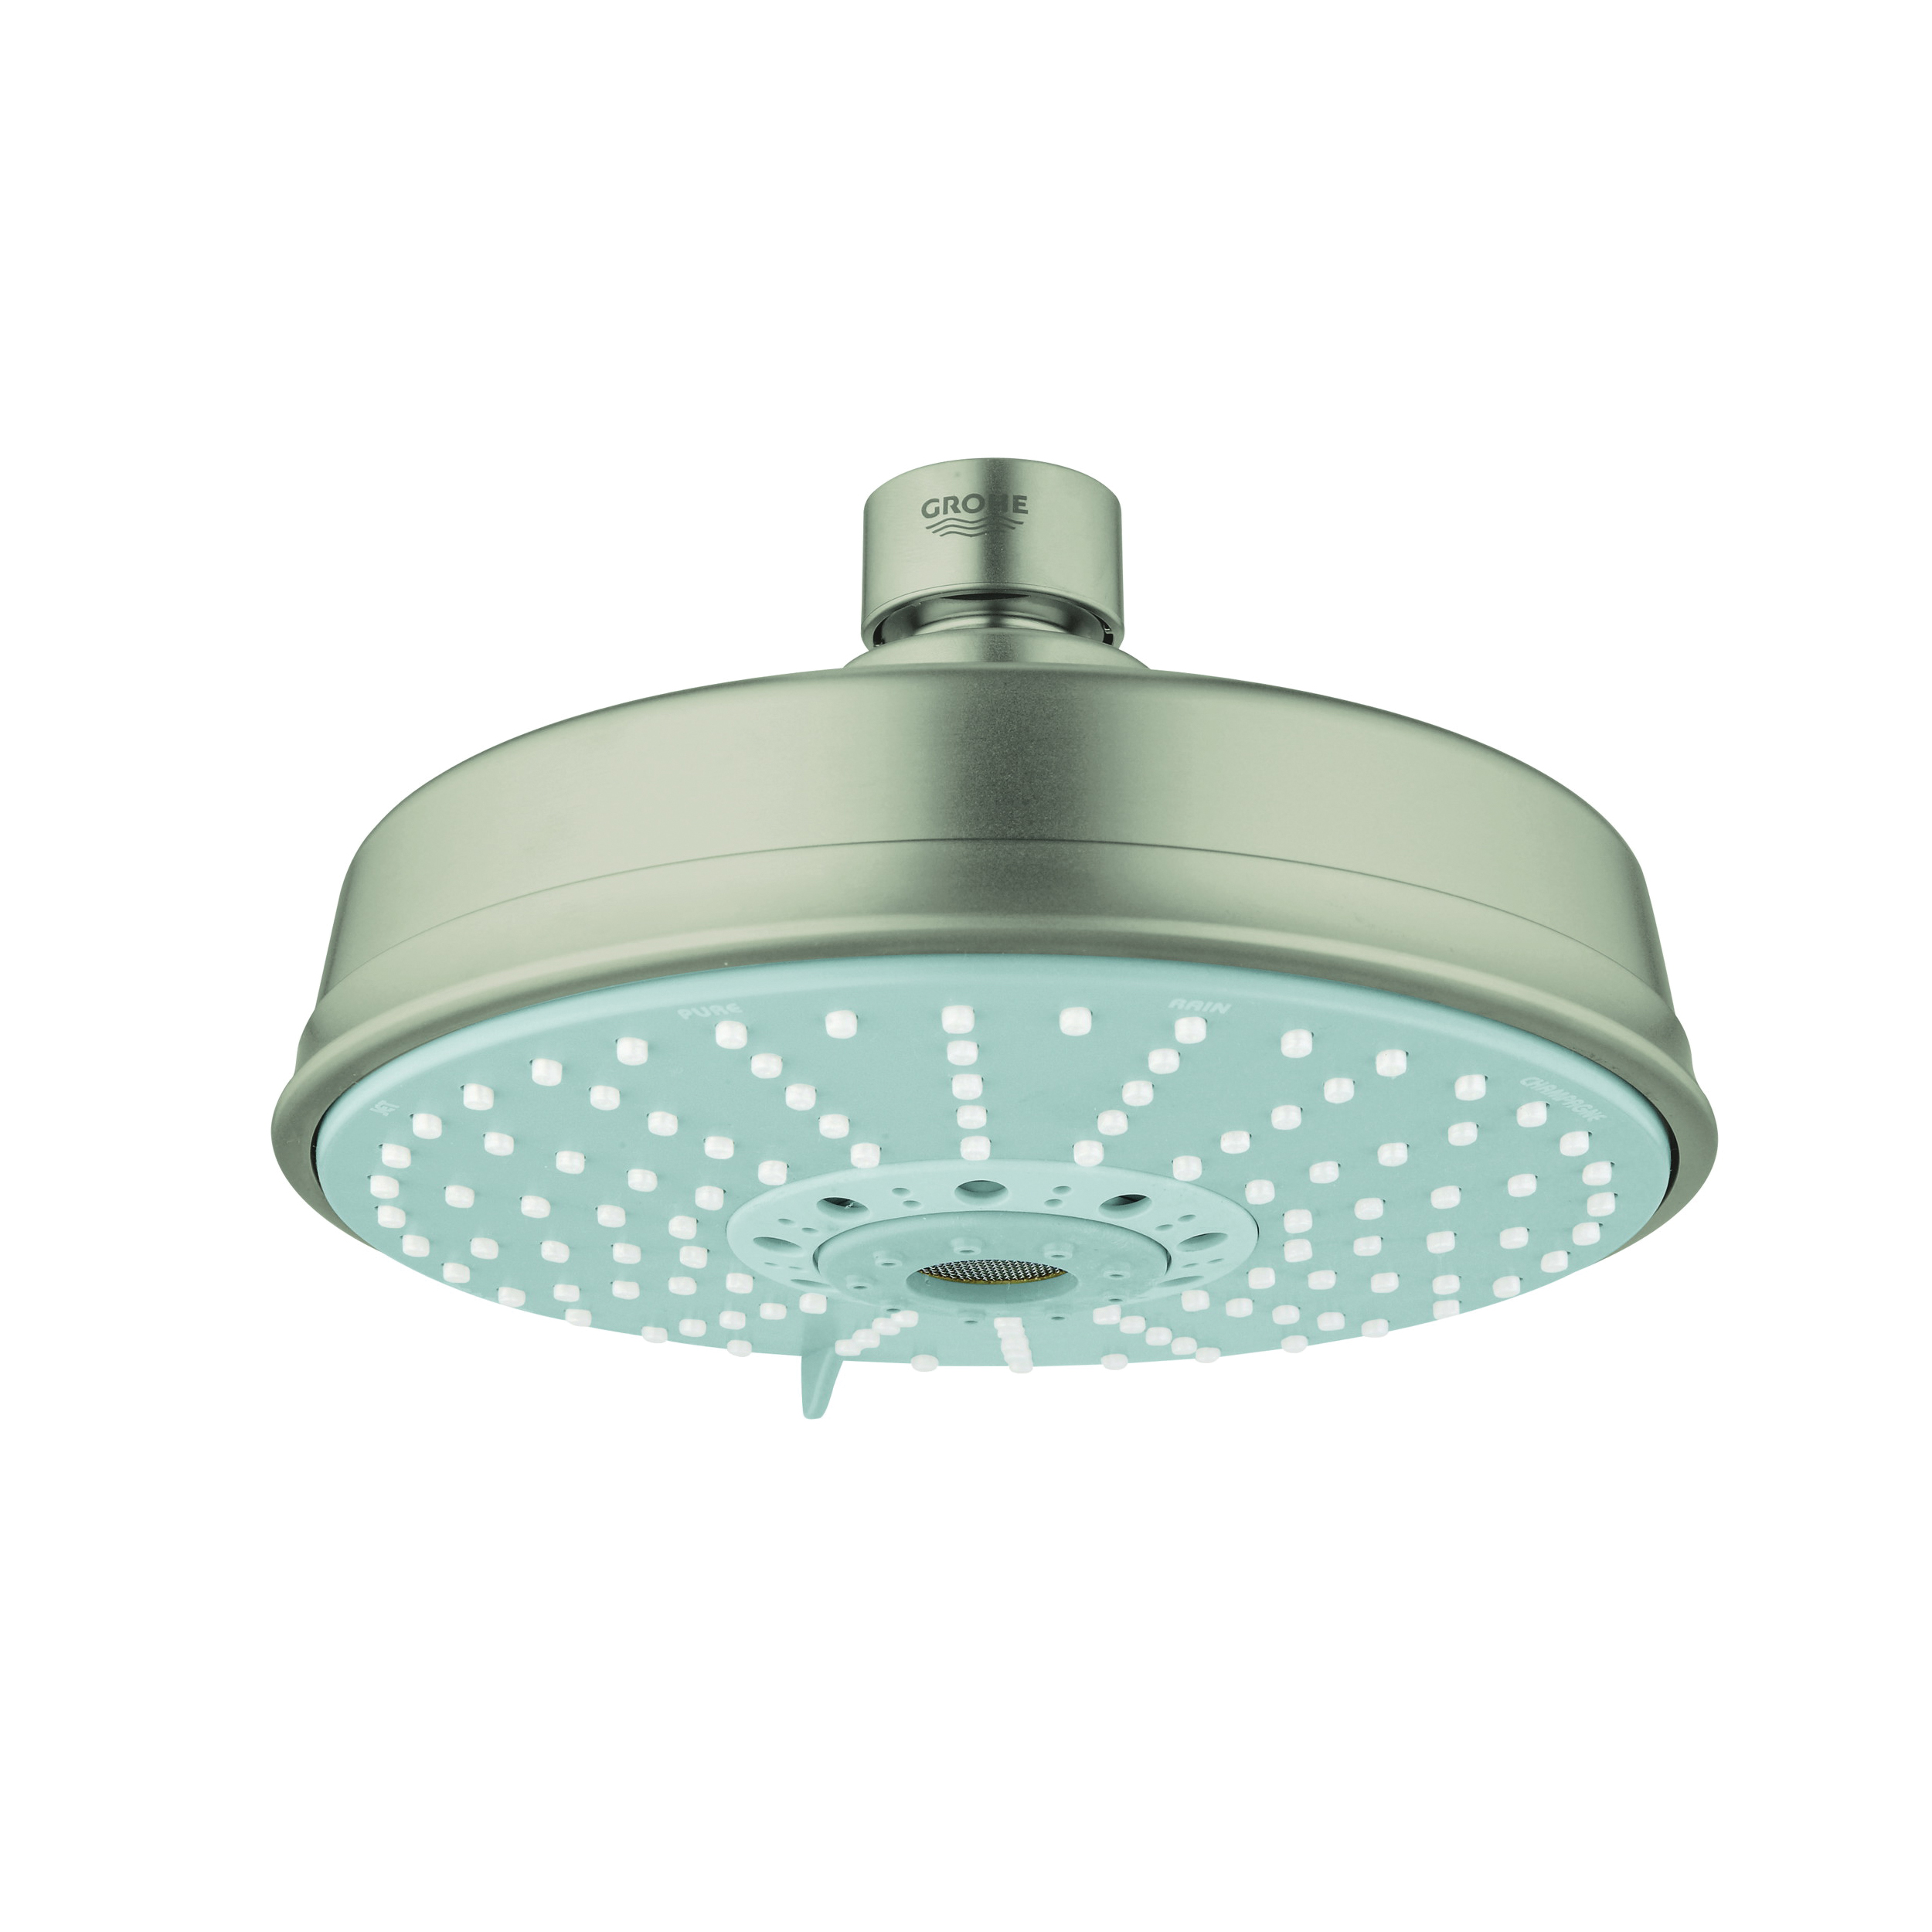 GROHE 27130EN0 Rainshower® Rustic 160 Shower Head, 2.5 gpm, 4 Sprays, Ceiling Mount, 6-5/16 in Dia Head, Import